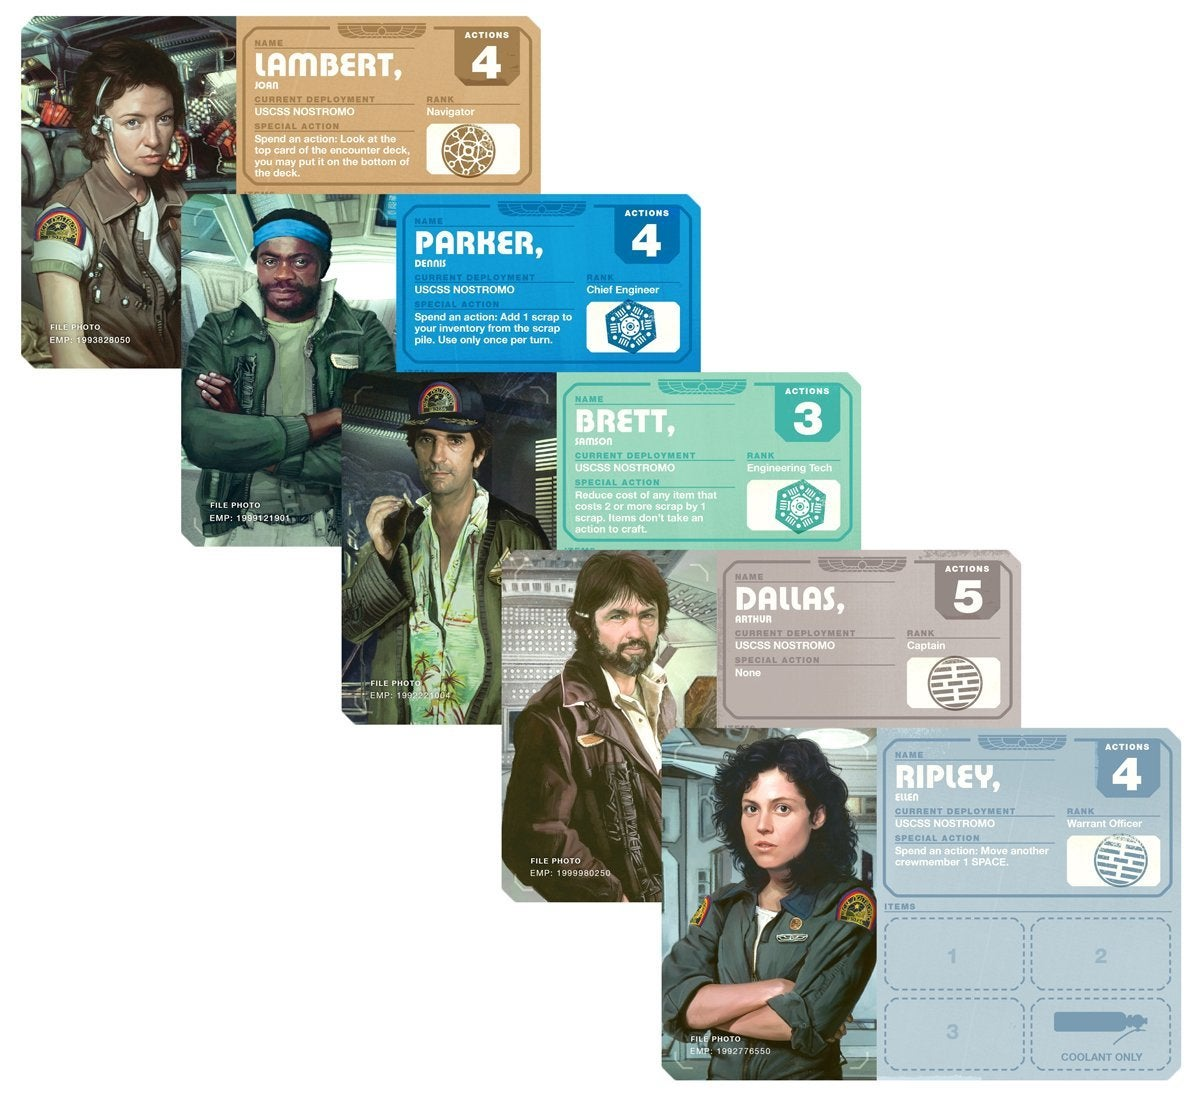 alien board game character cards